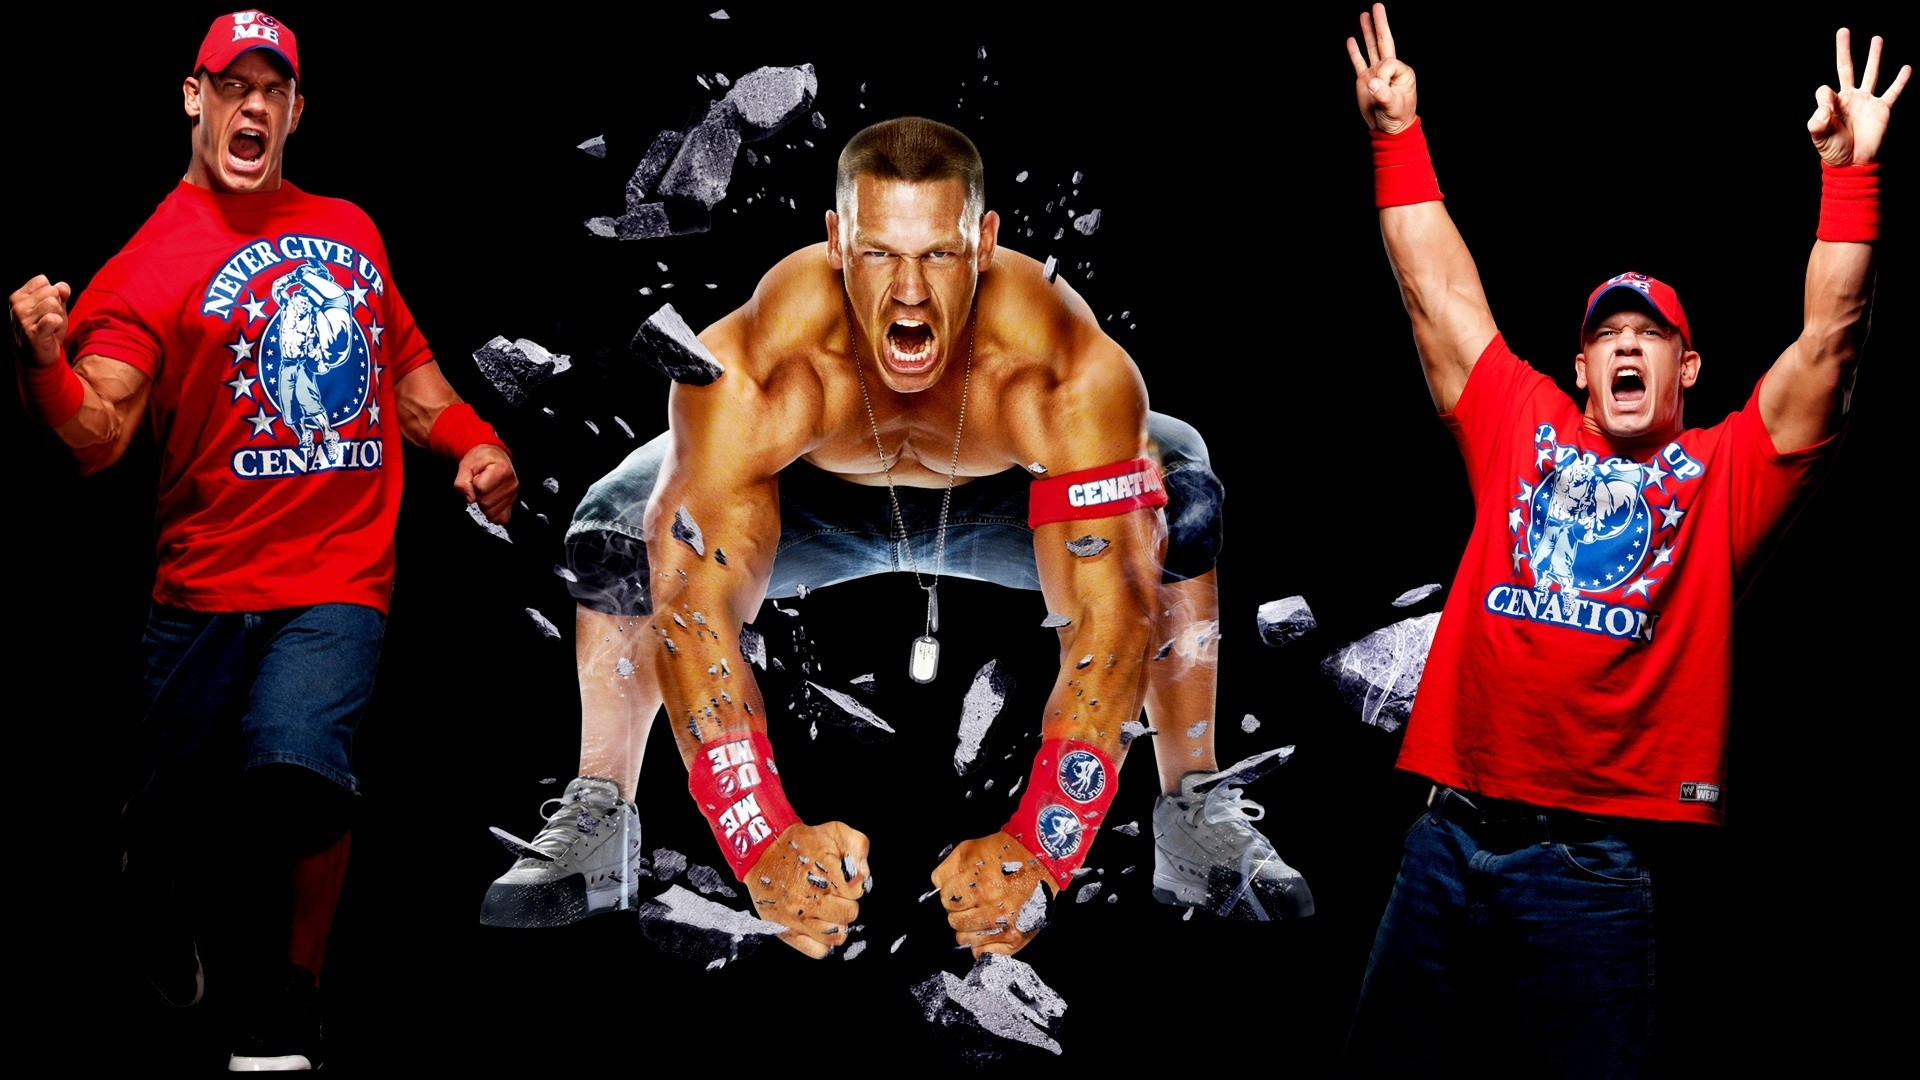 WWE HD Wallpapers for Desktop, iPhone, iPad, and Android